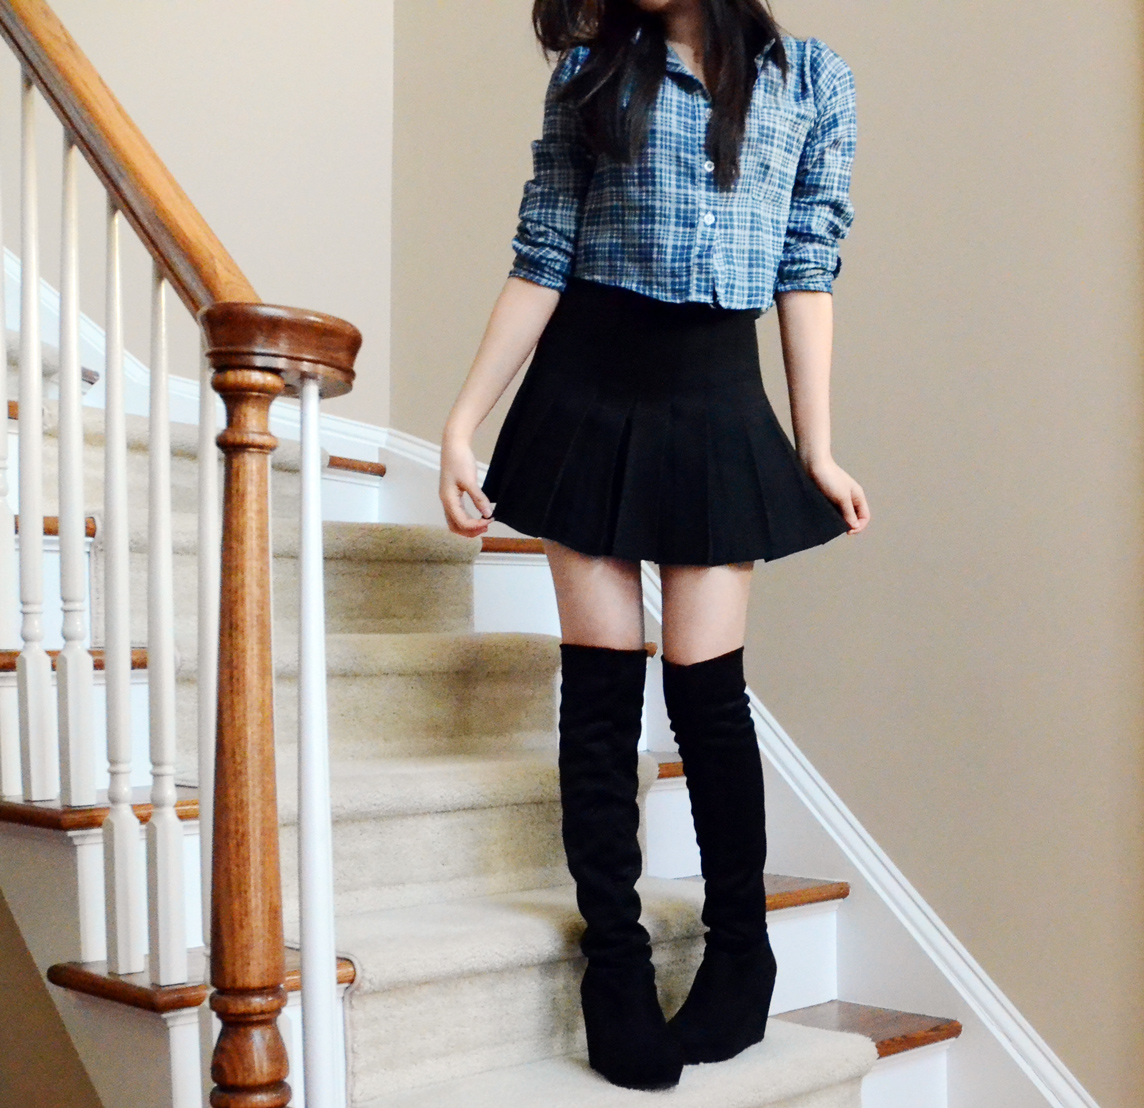 Full view of the SheInside pleated skirt (American Apparel dupe) as well as the plaid cropped shirt and wedged knee-high boots.